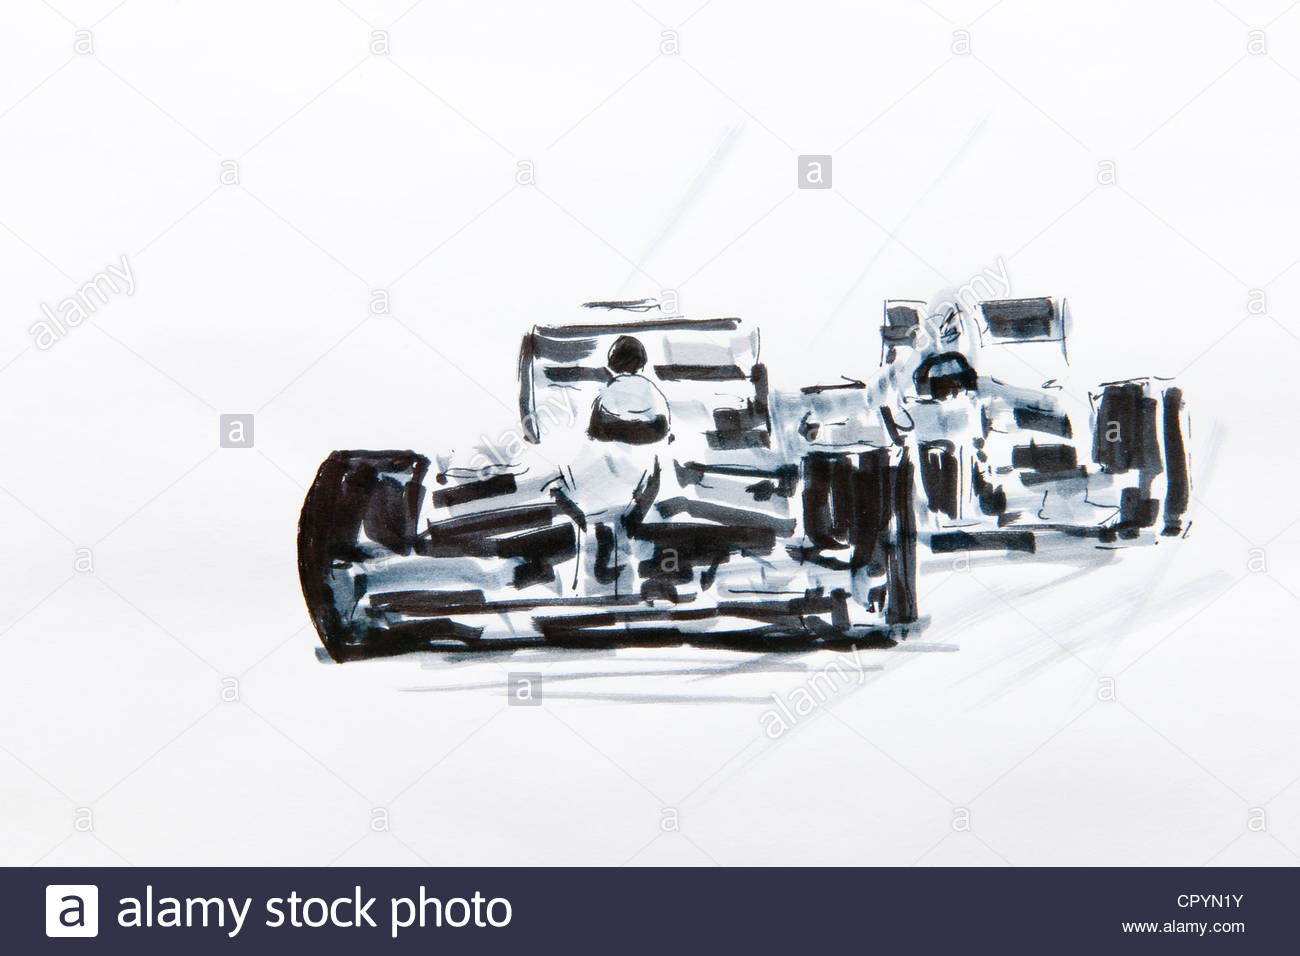 1300x956 Formula One Car Racing, Drawing By Gerhard Kraus, Kriftel, Germany